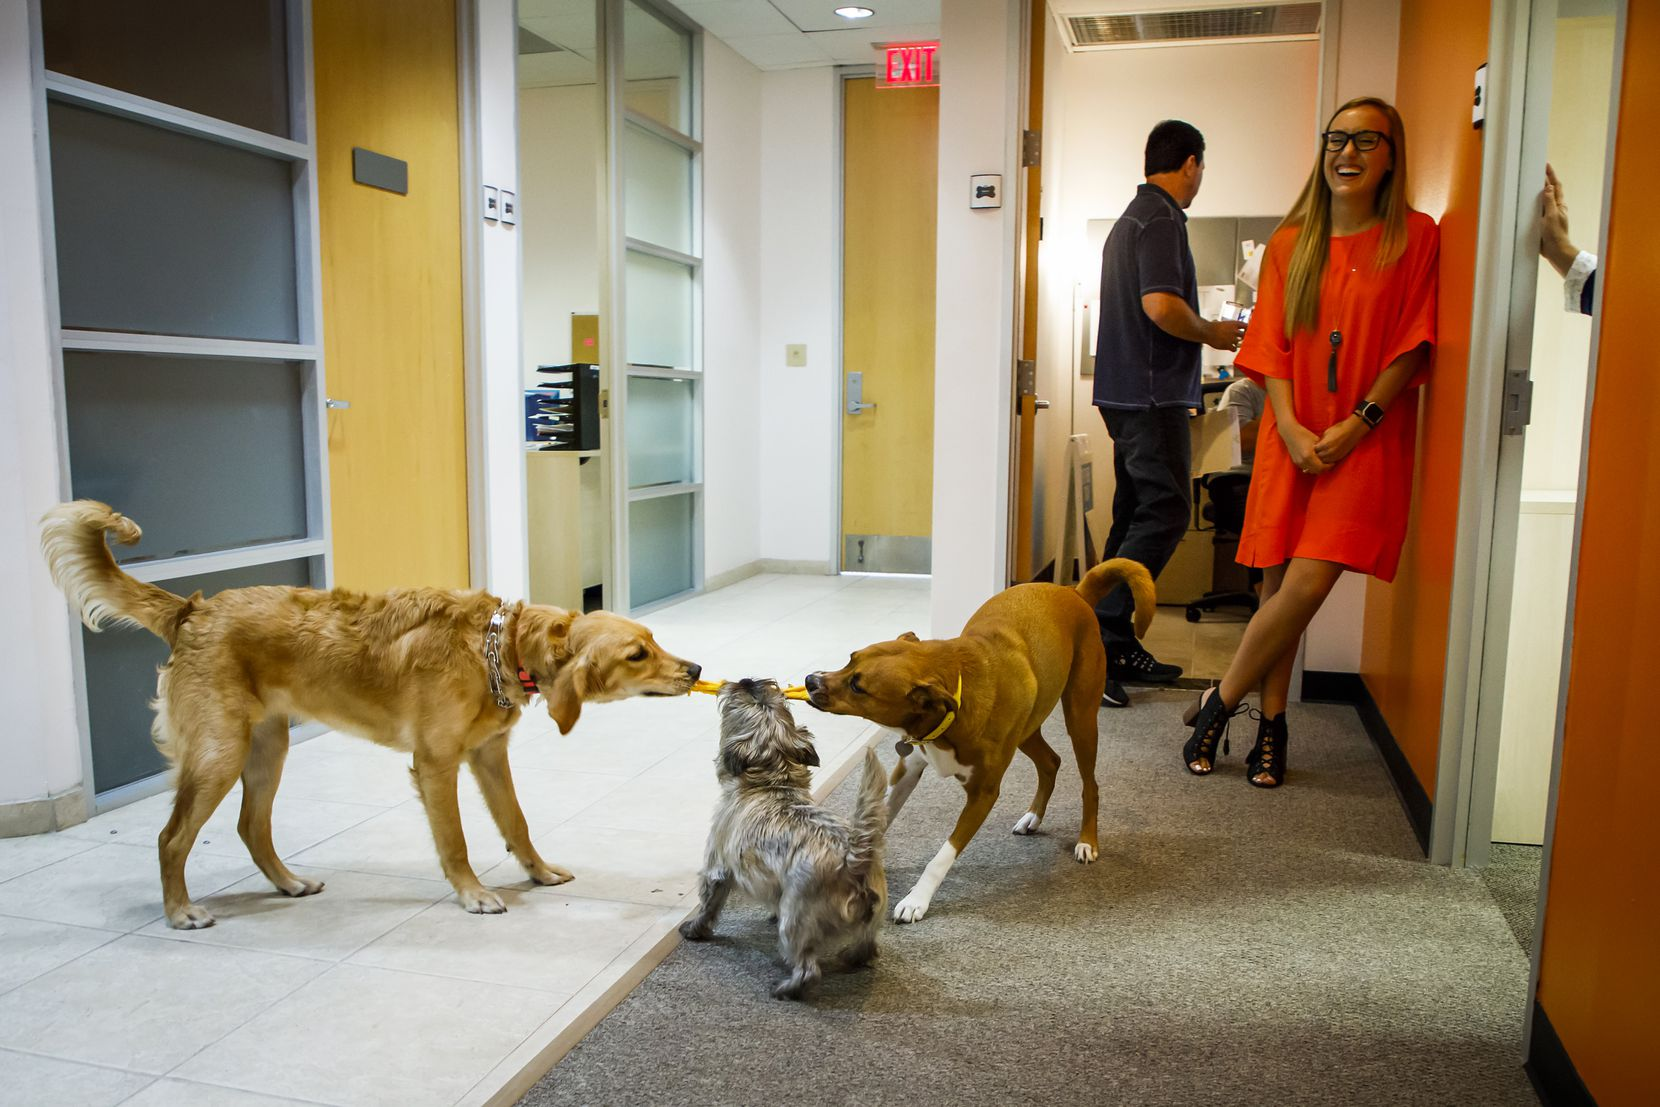 """Media coordinator Sharon Lowe laughed as her dog Lola (right) played with her coworkers' dogs in the hallway outside offices at The Loomis Agency in 2017. Not only is the office dog-friendly, it's central to the agency's motto, """"The Voice of the Underdog."""""""